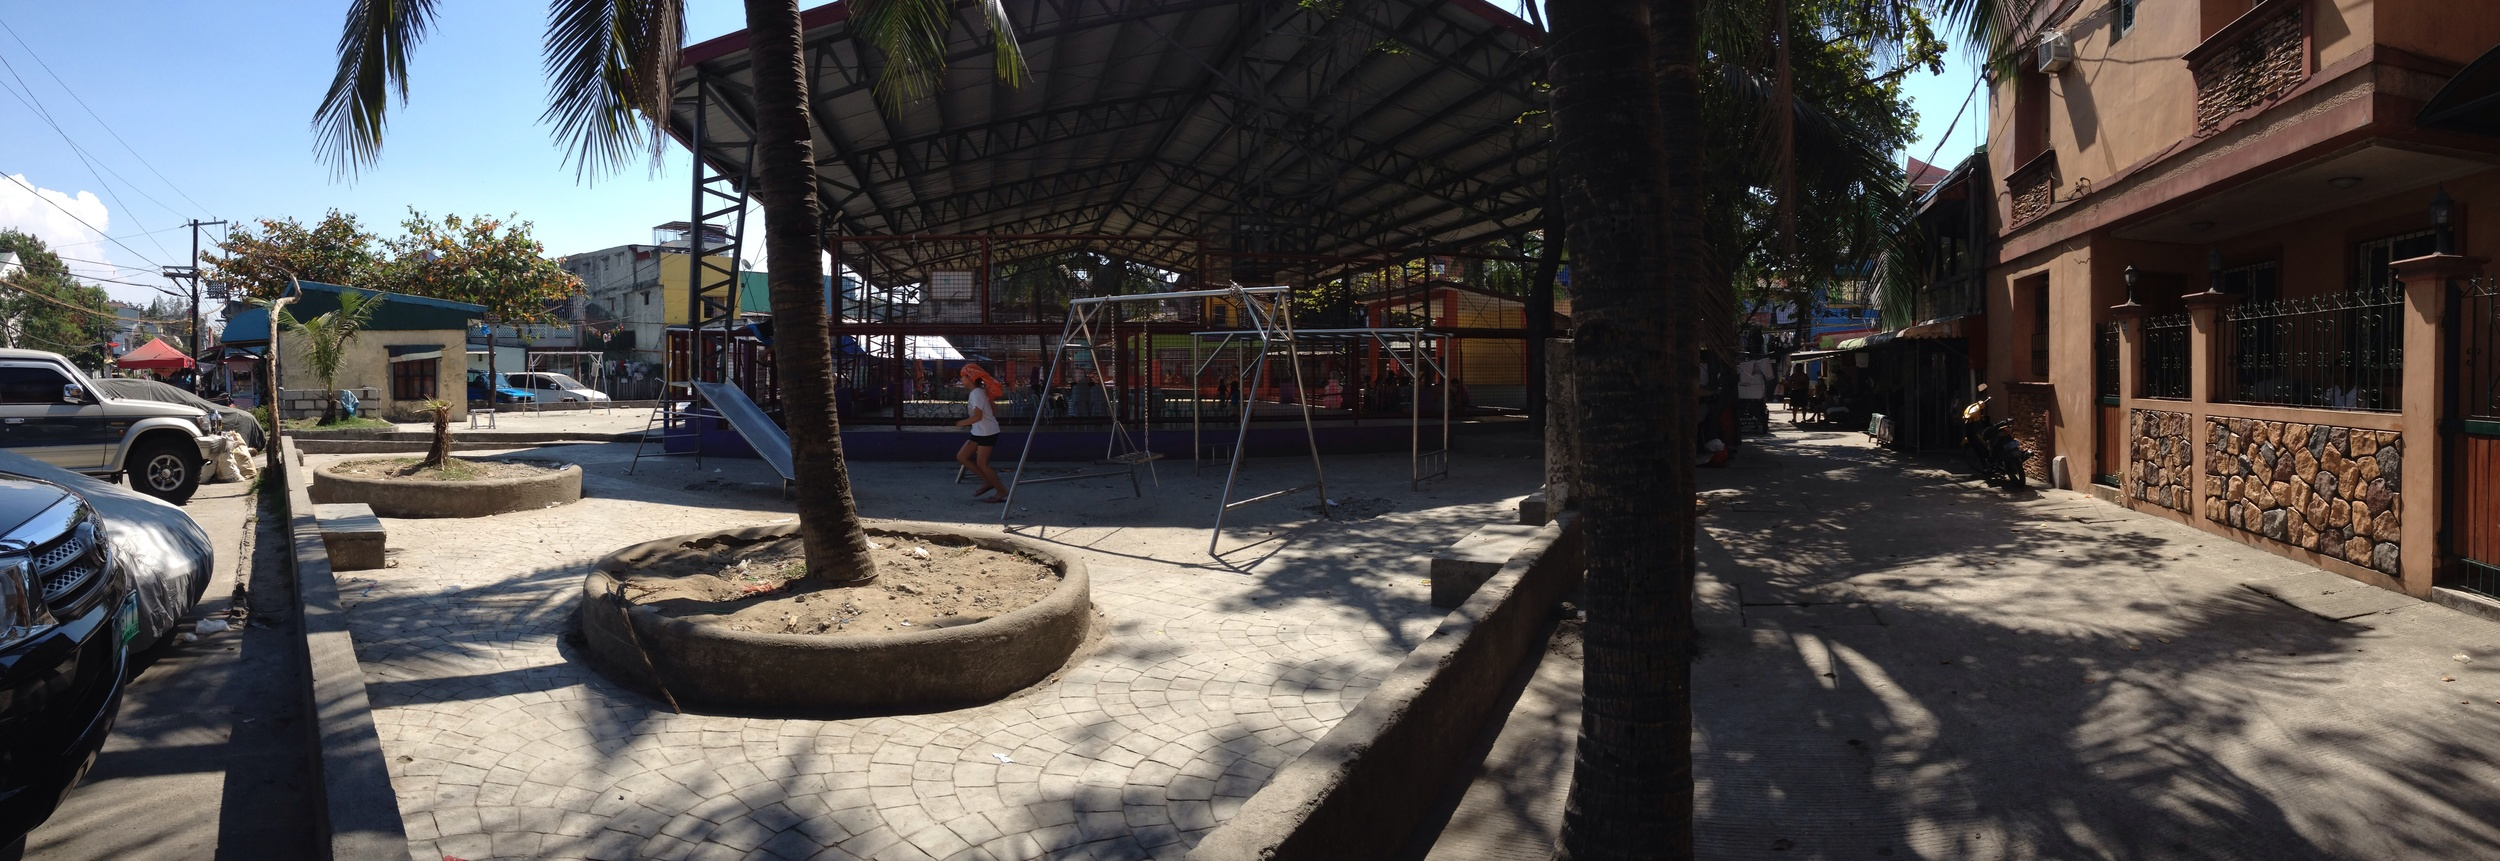 From left to right: barangay hall, basketball court, playground, general open space